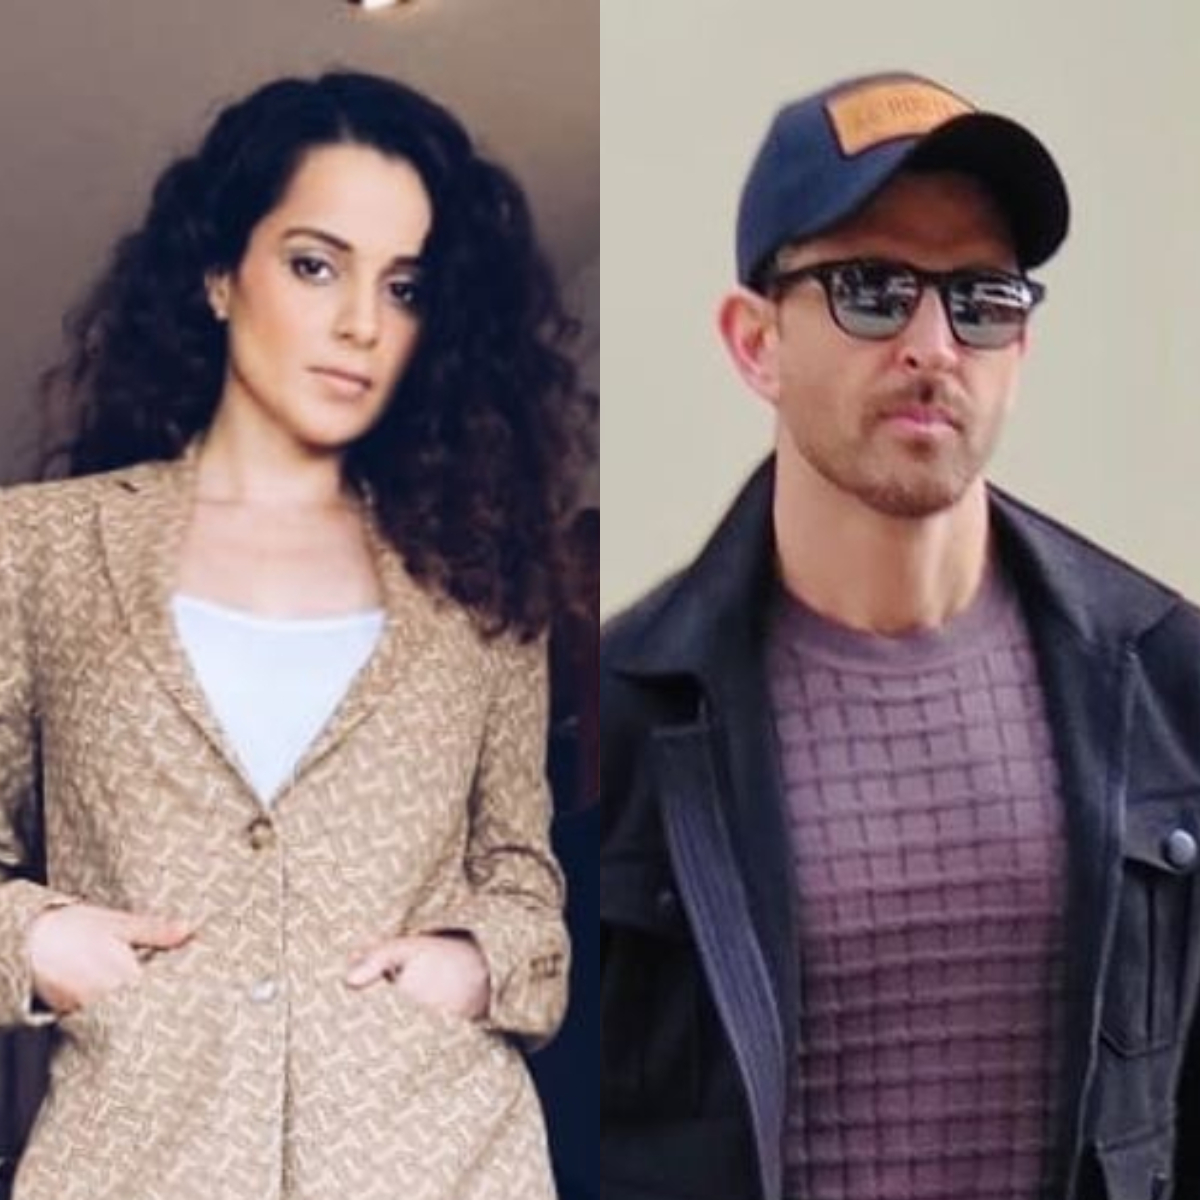 Team Kangana Ranaut talks about 'silly ex' after Hrithik Roshan wishes Taapsee Pannu on her birthday